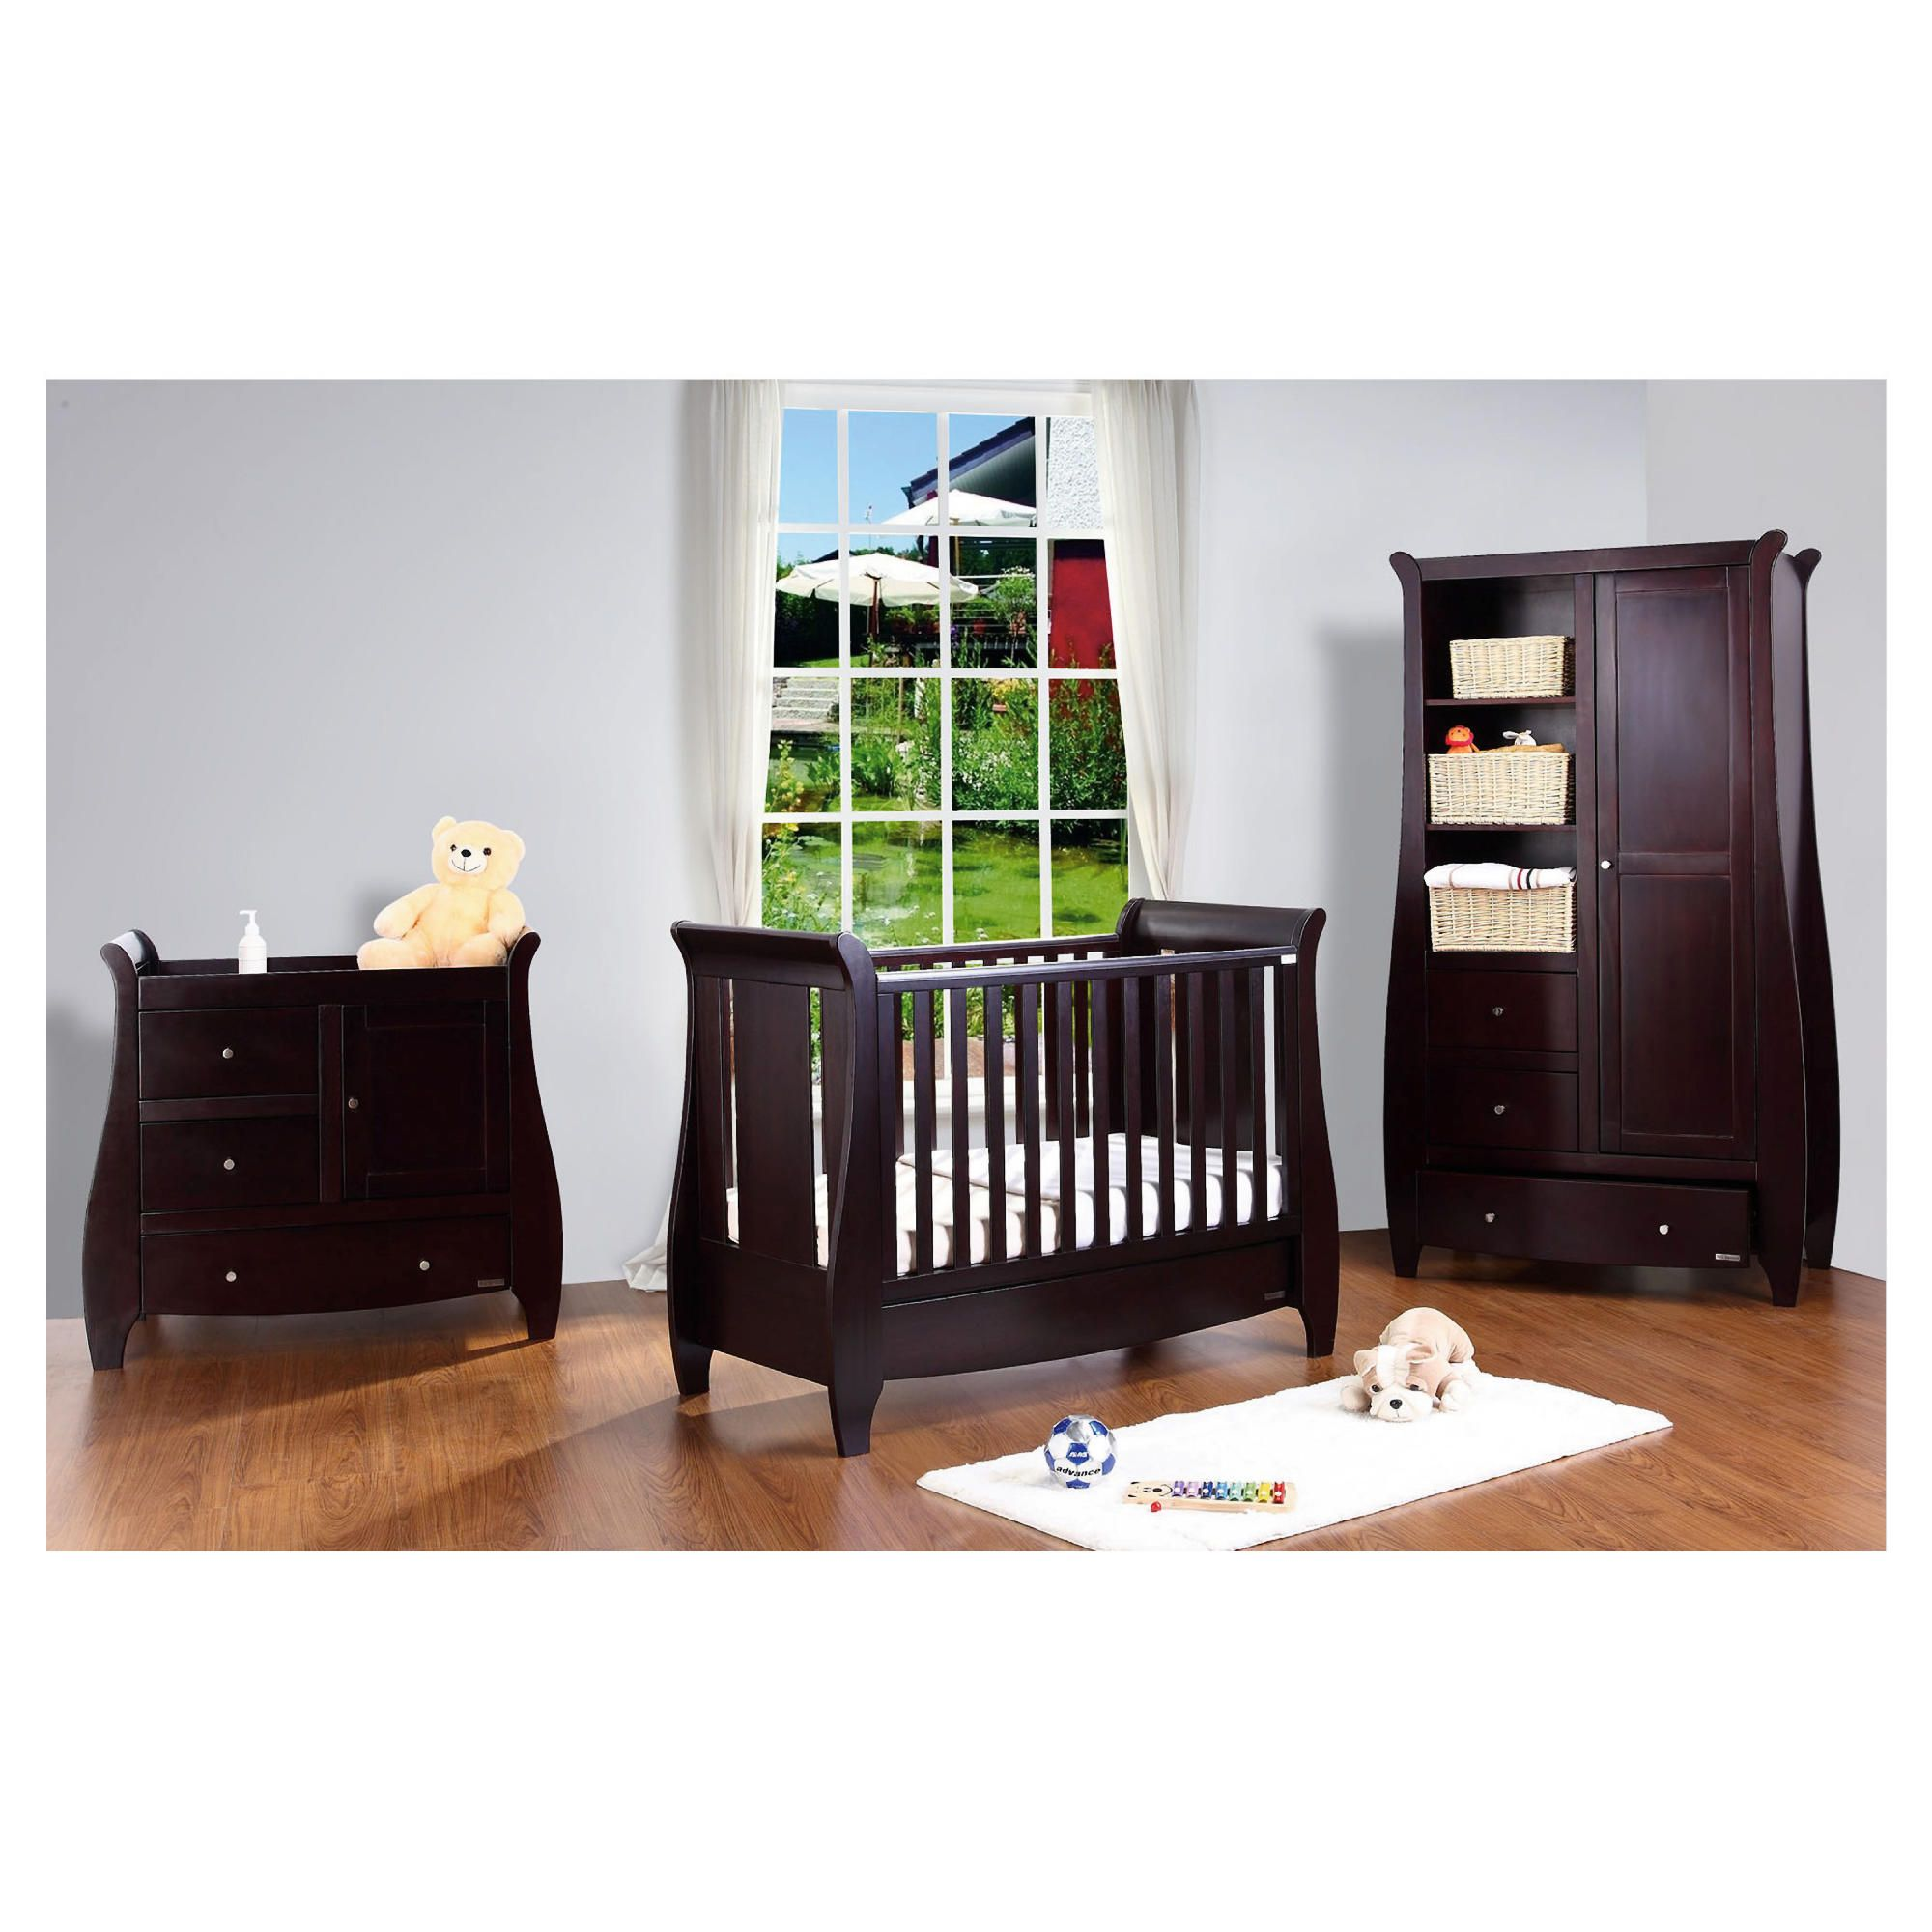 Tutti Bambini Katie 3 Piece Room Set, Espresso With Free Home Assembly at Tesco Direct